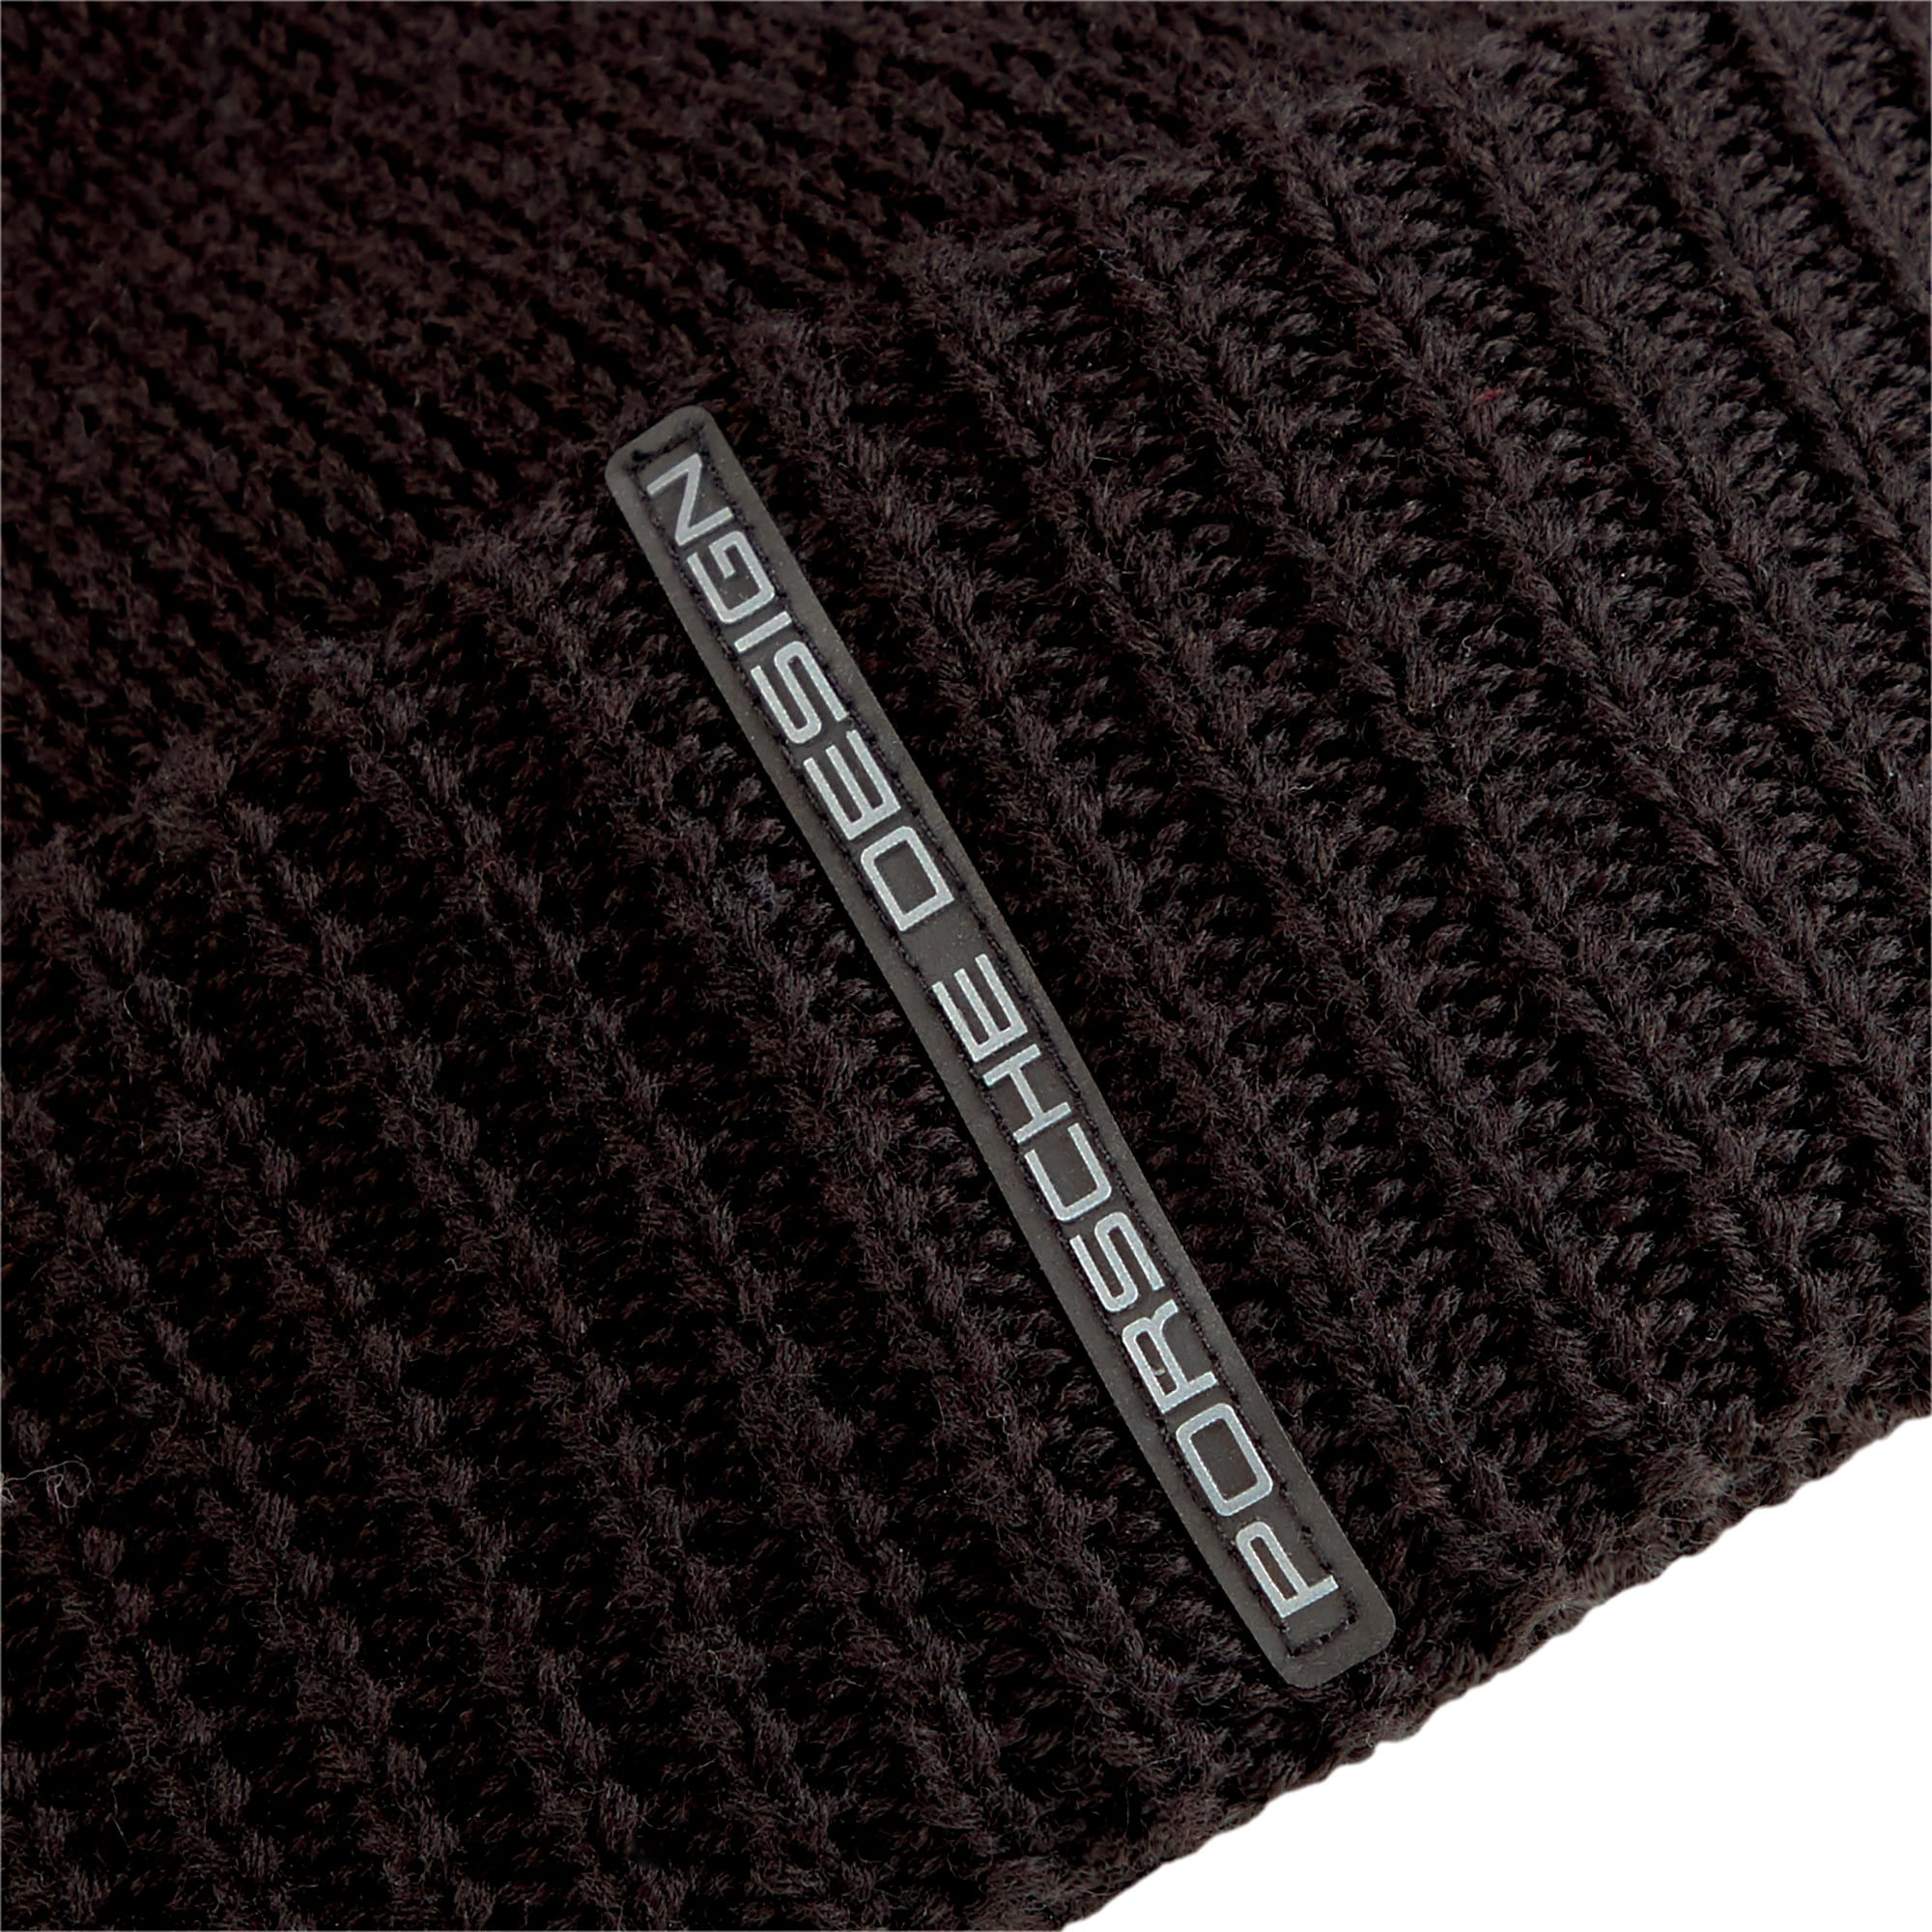 Thumbnail 4 of Porsche Design Knit Beanie, Puma Black, medium